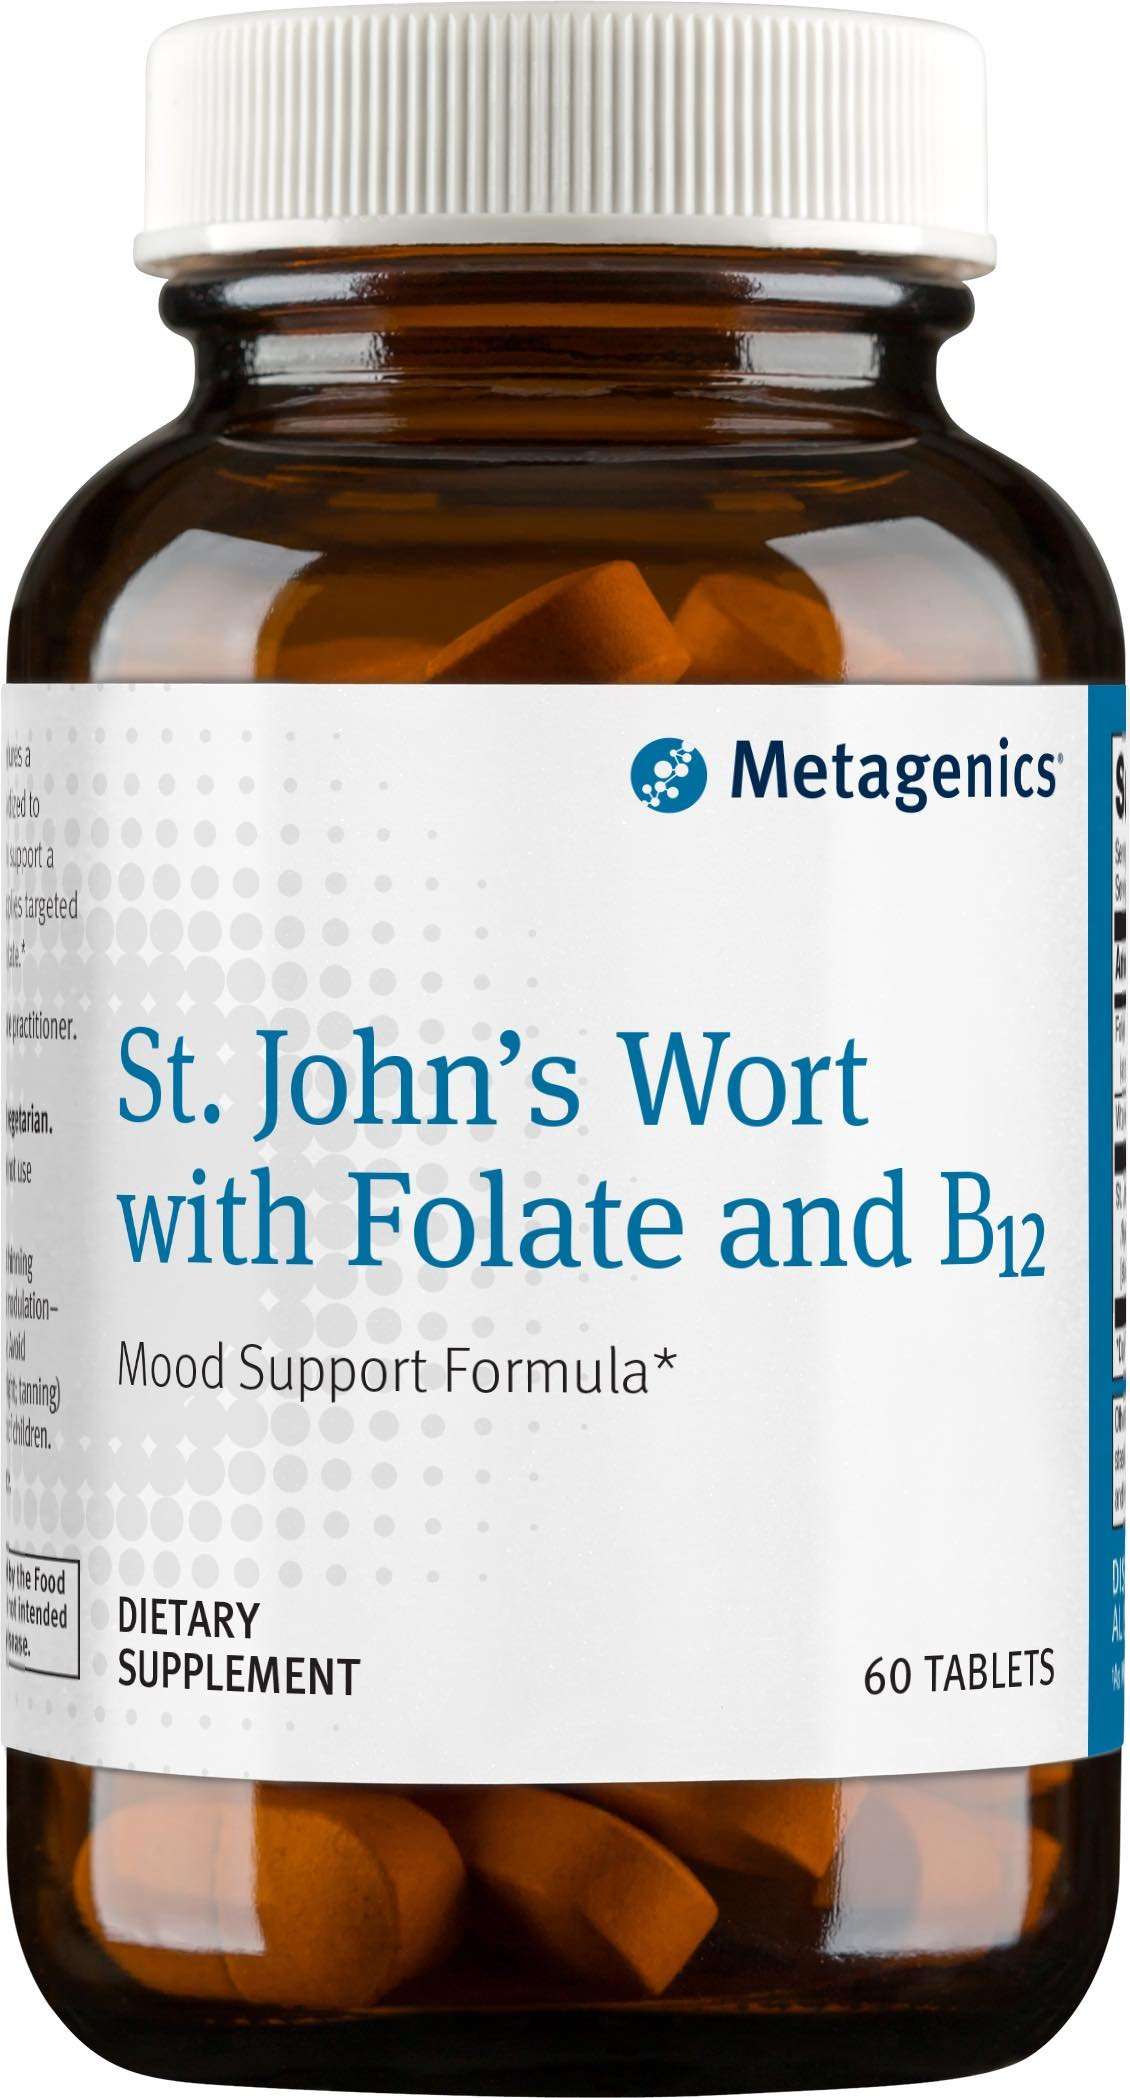 Metagenics - St. John's Wort with Folate and B12, 60 Count by Metagenics